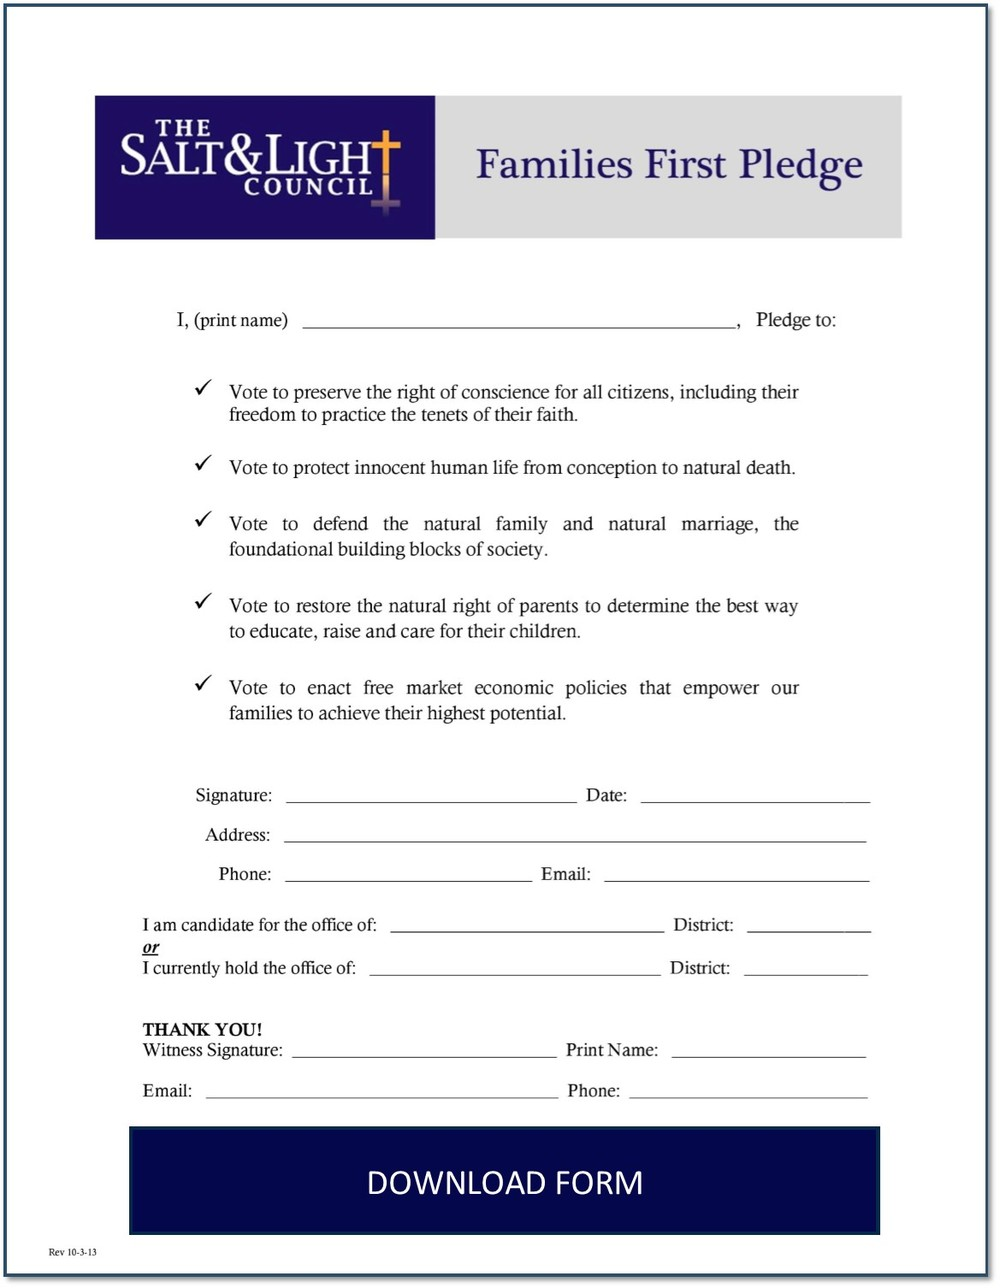 Families First Pledge